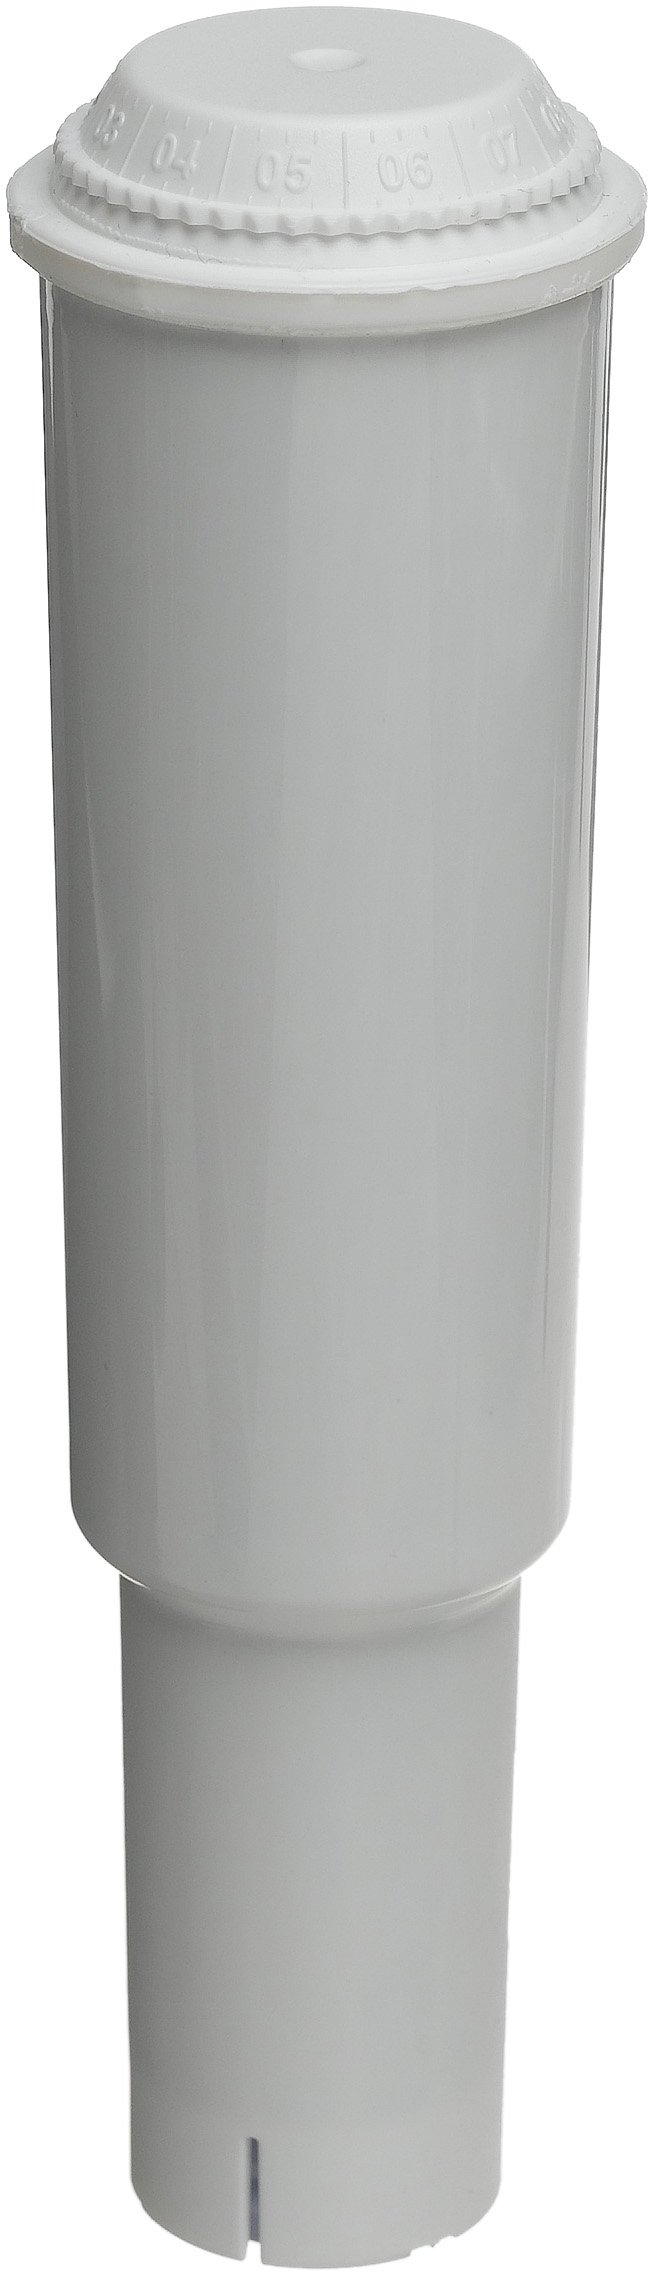 Jura 64553 CLEARYL  Water-Filter Cartridge, White